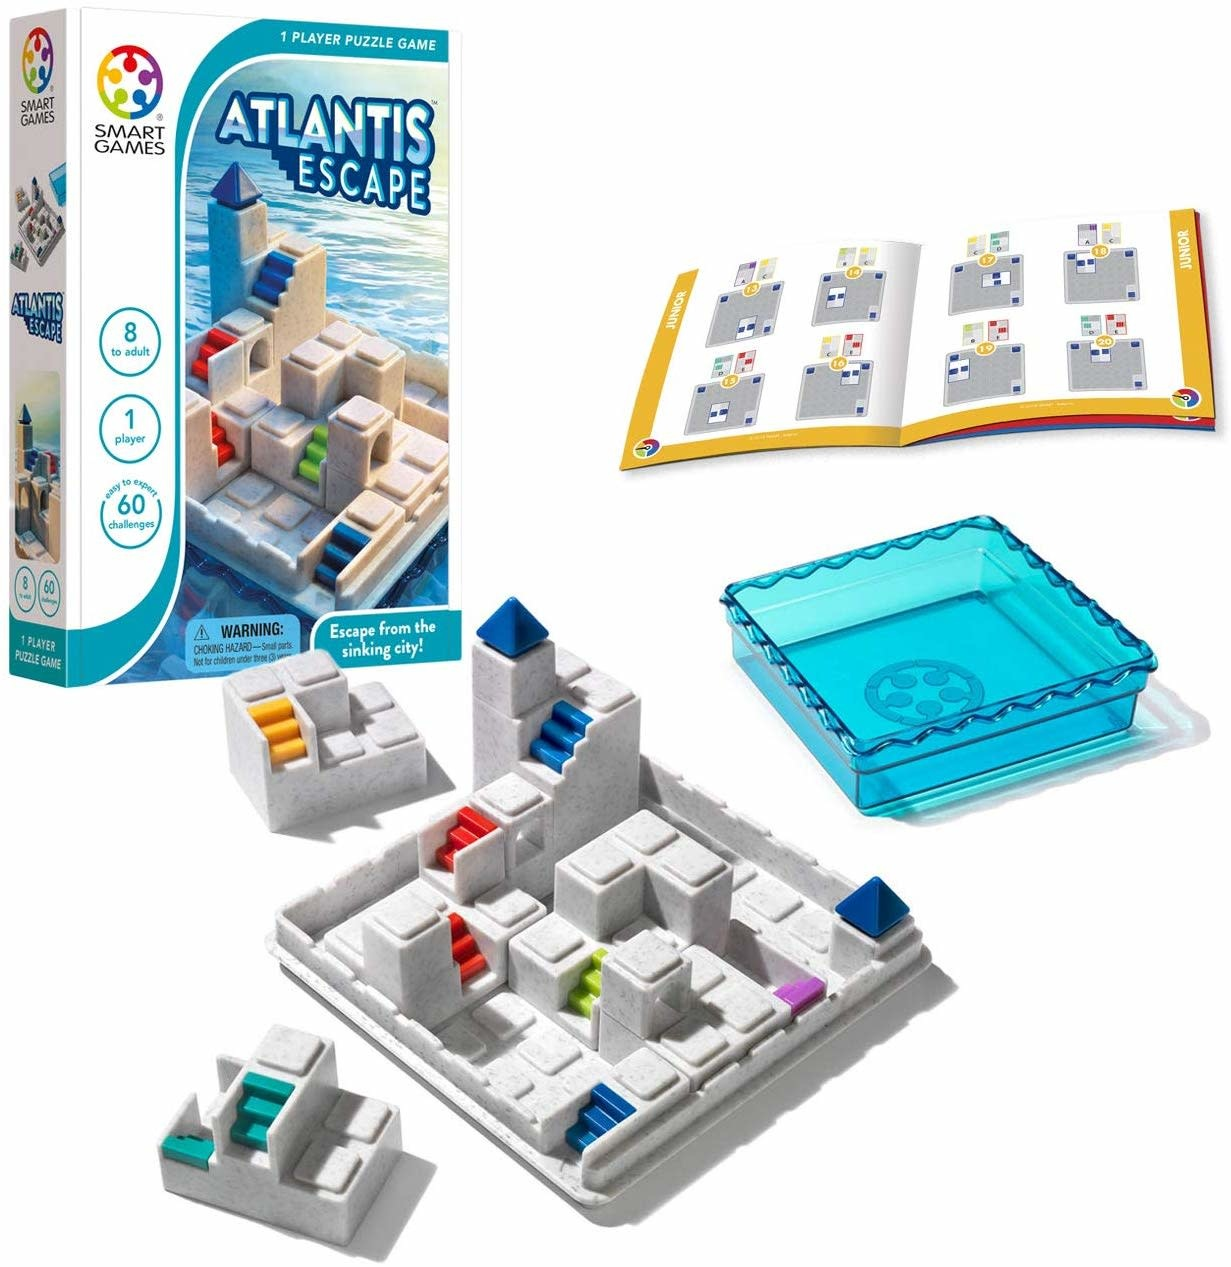 Atlantis Escape by Smart Games